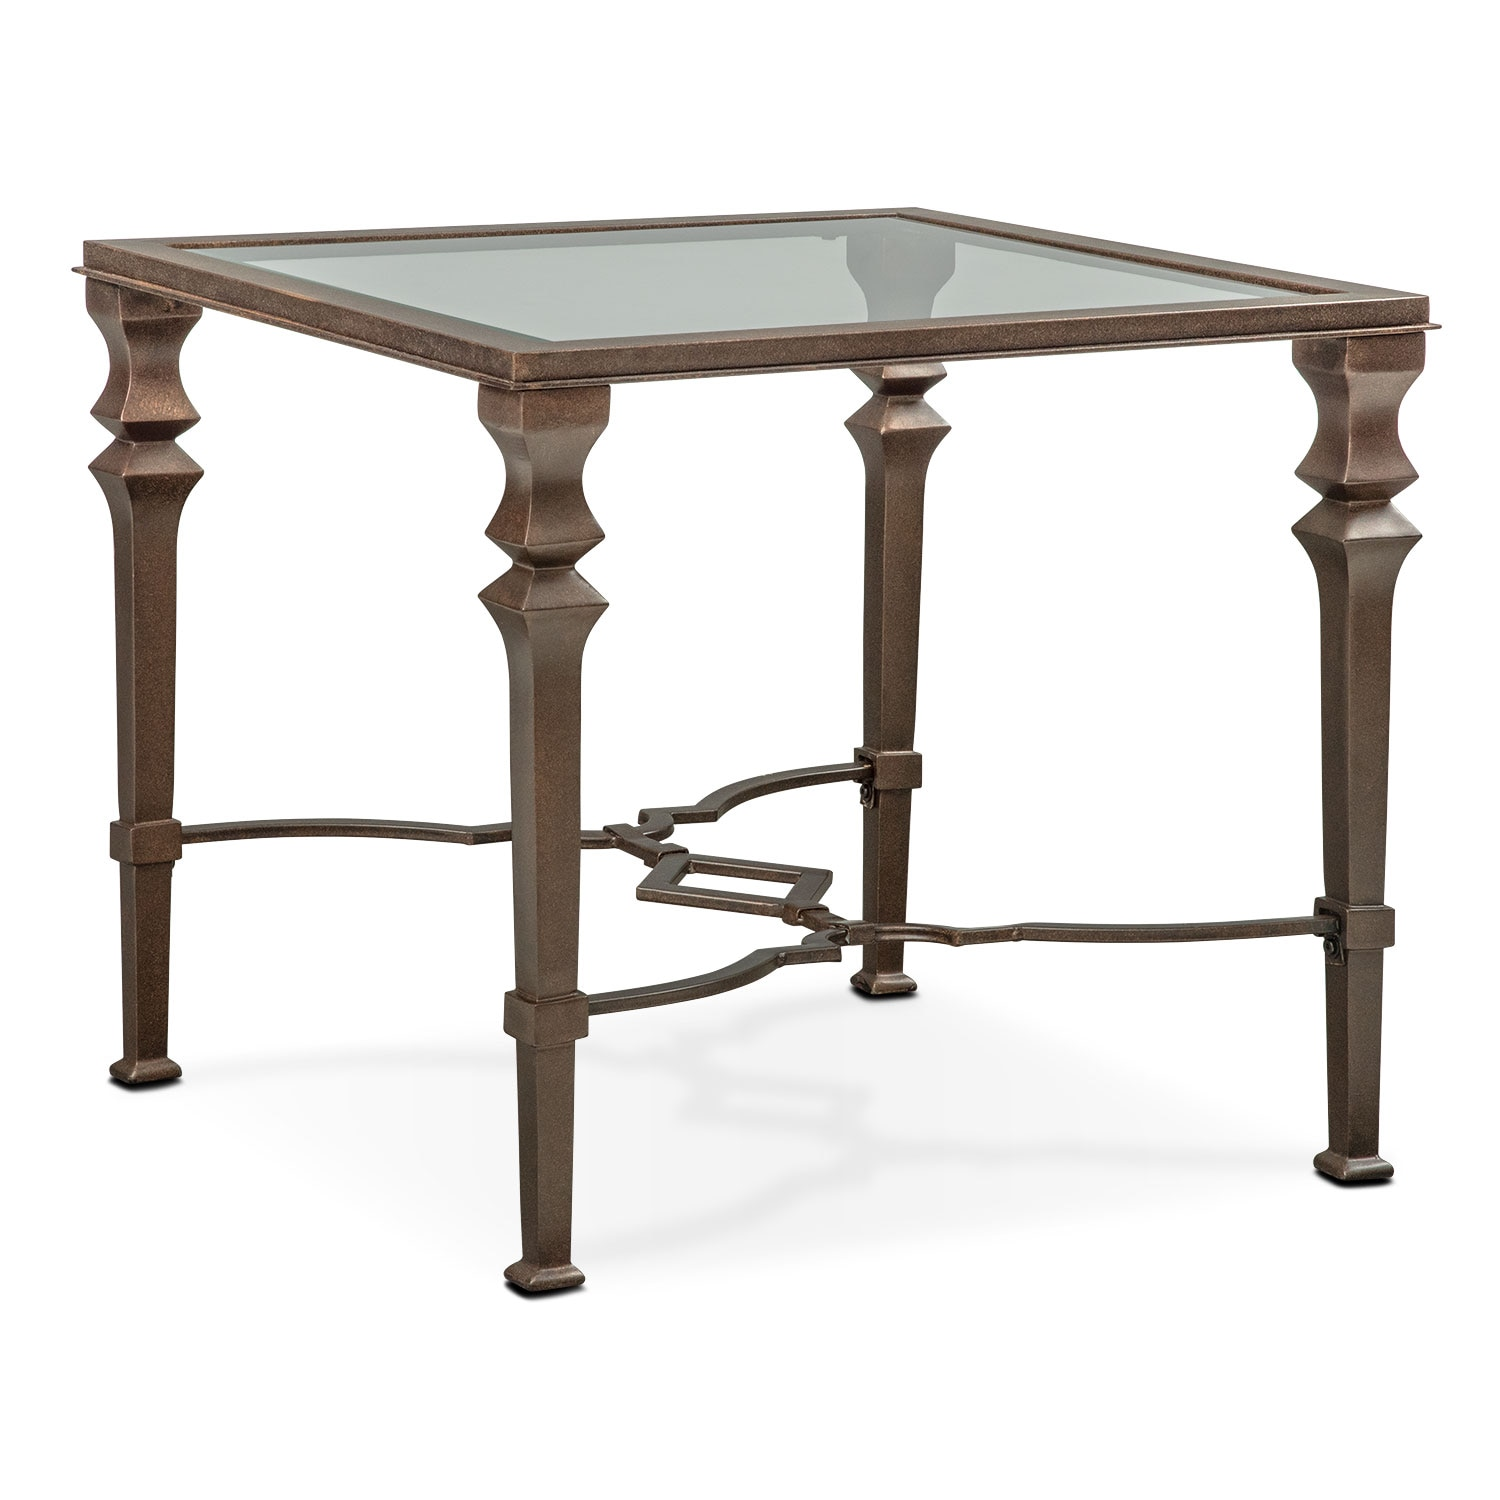 venue end table   bronze. Value City Furniture   Canton  OH 44720